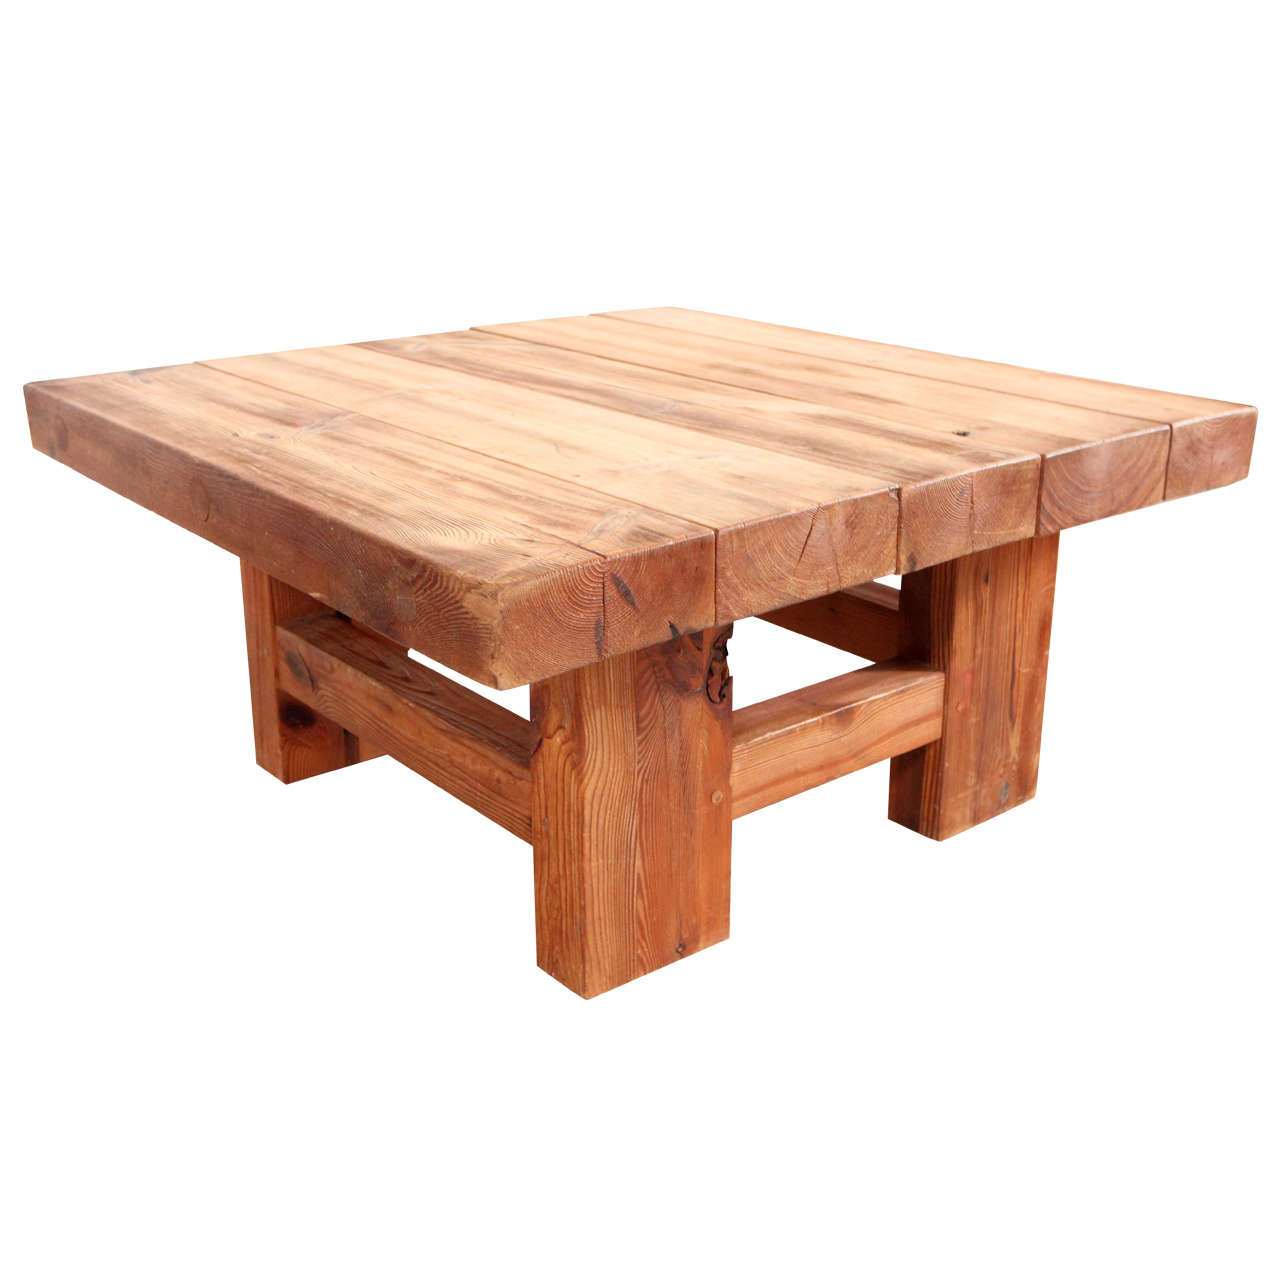 Rustic wood block square coffee table at 1stdibs Coffee tables rustic